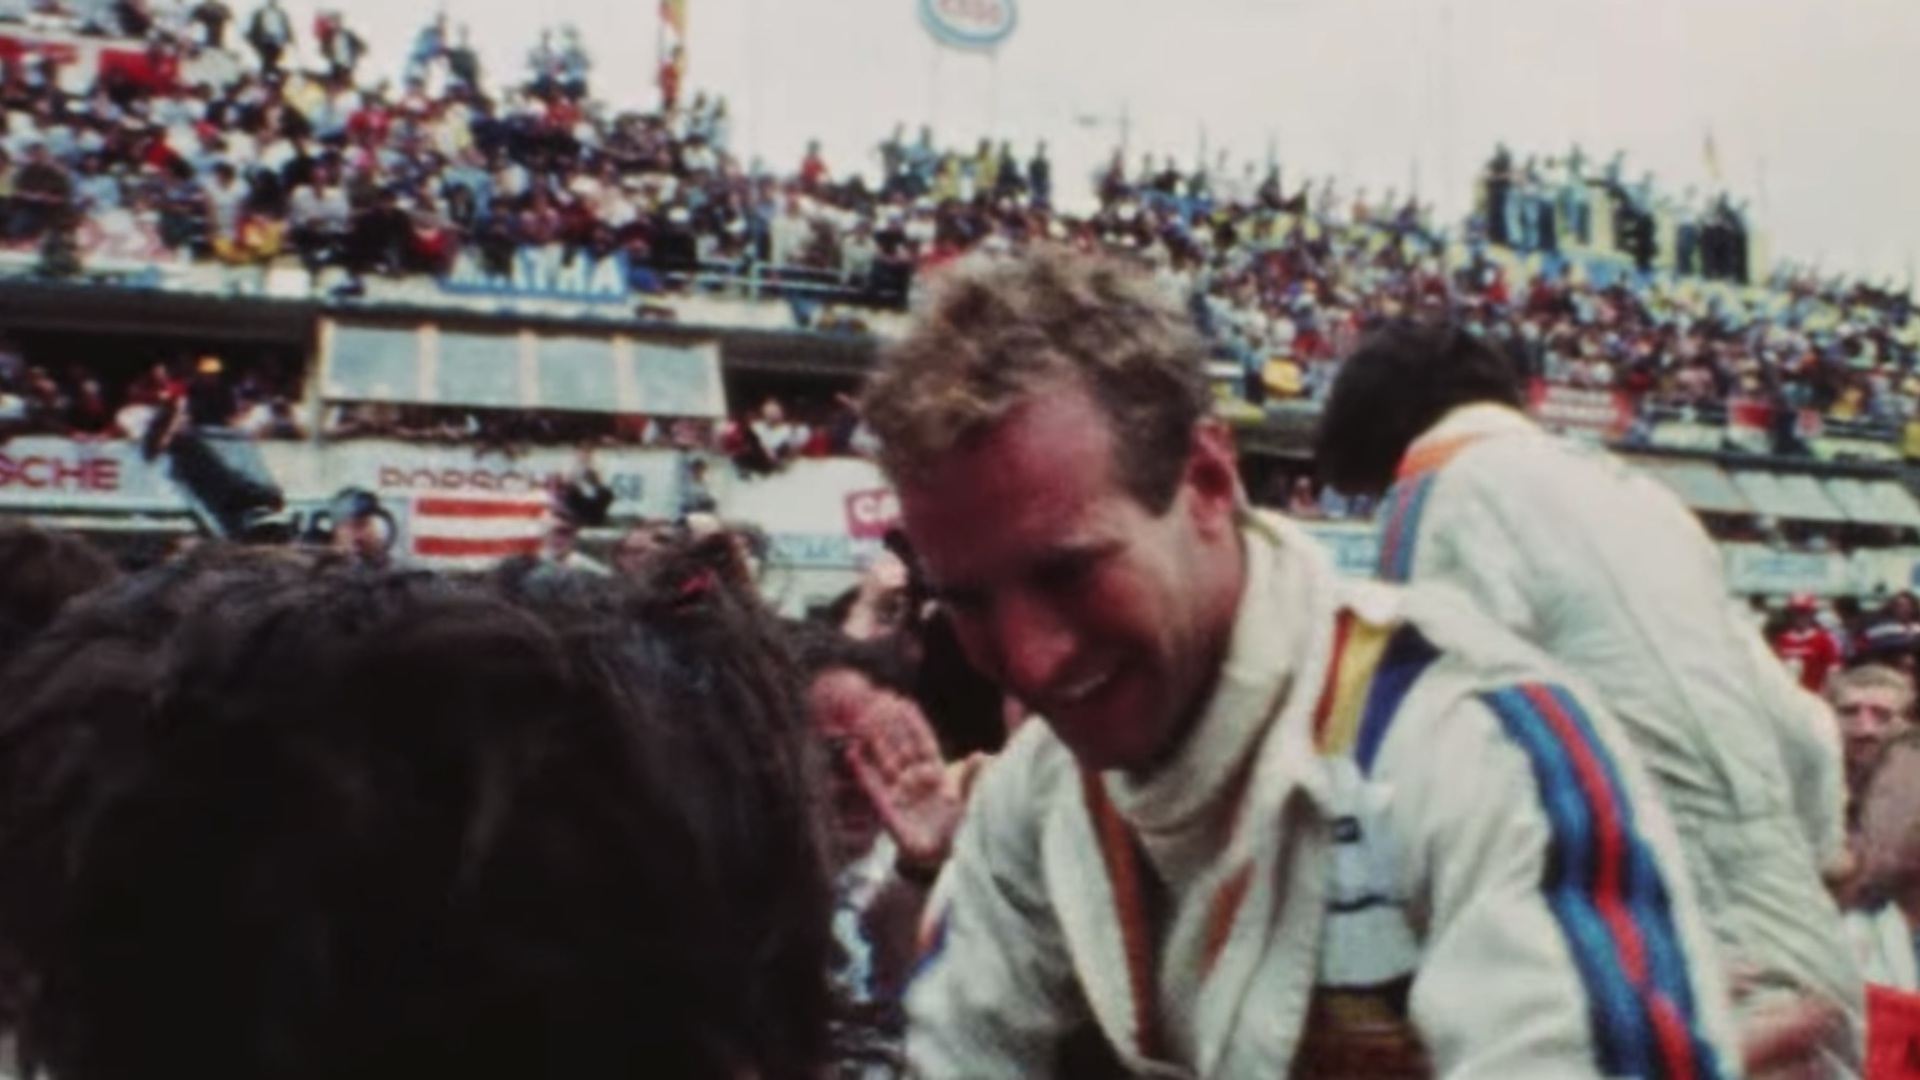 Hurley Haywood at Le Mans